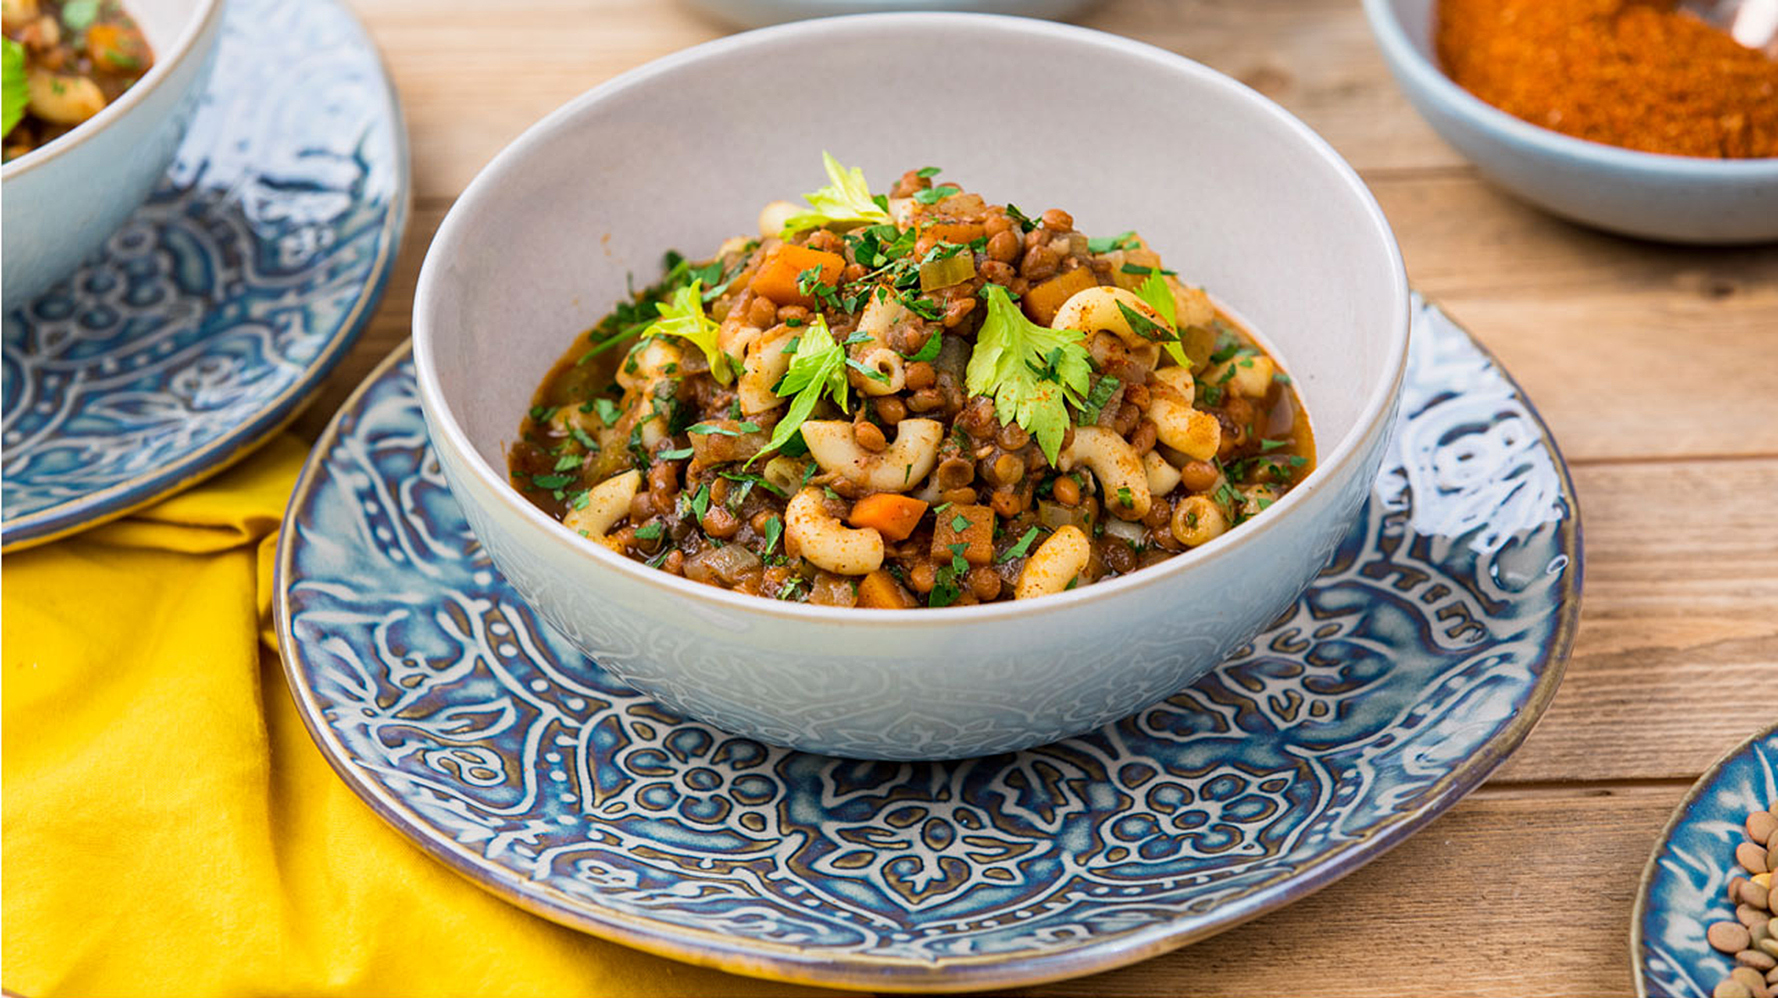 Ethiopian style lenticchie pasta david rocco this recipe uses a spice mix i picked up in ethiopia called berbere its a savoury fusion dish thats perfect comfort food and will make your kitchen smell forumfinder Image collections